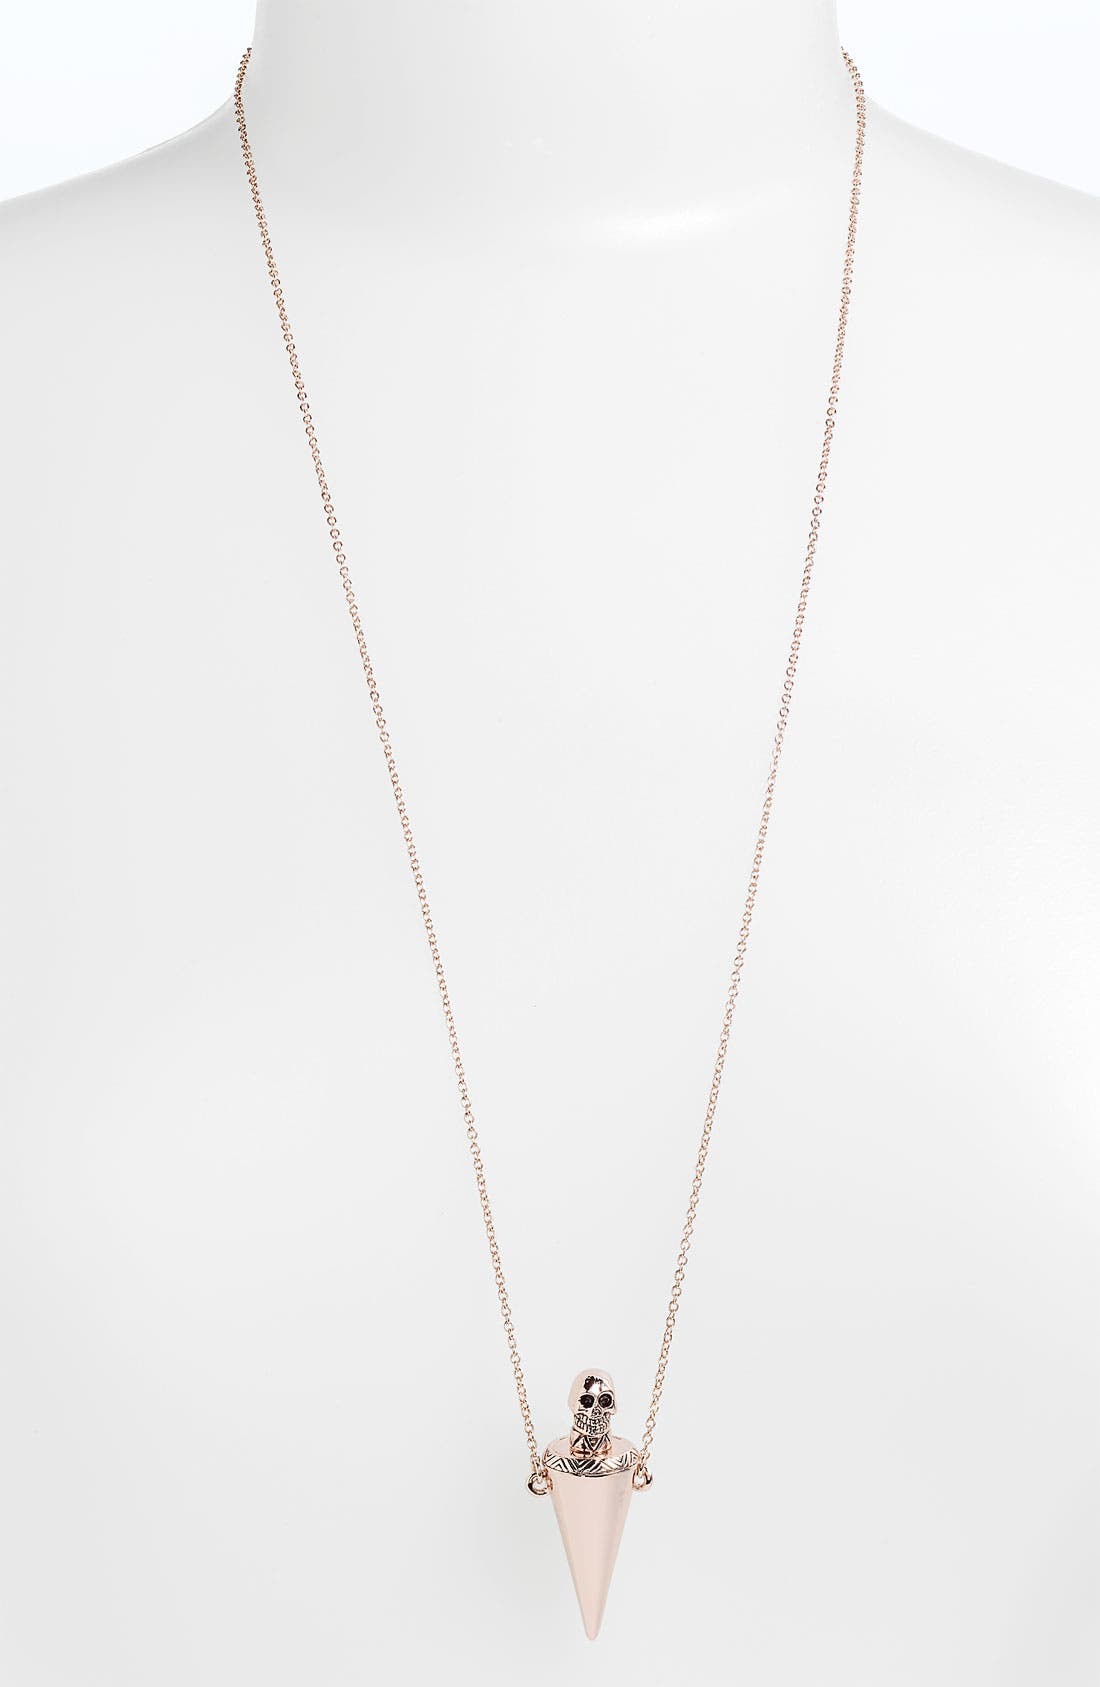 Alternate Image 1 Selected - House of Harlow 1960 'Skull Vial' Necklace